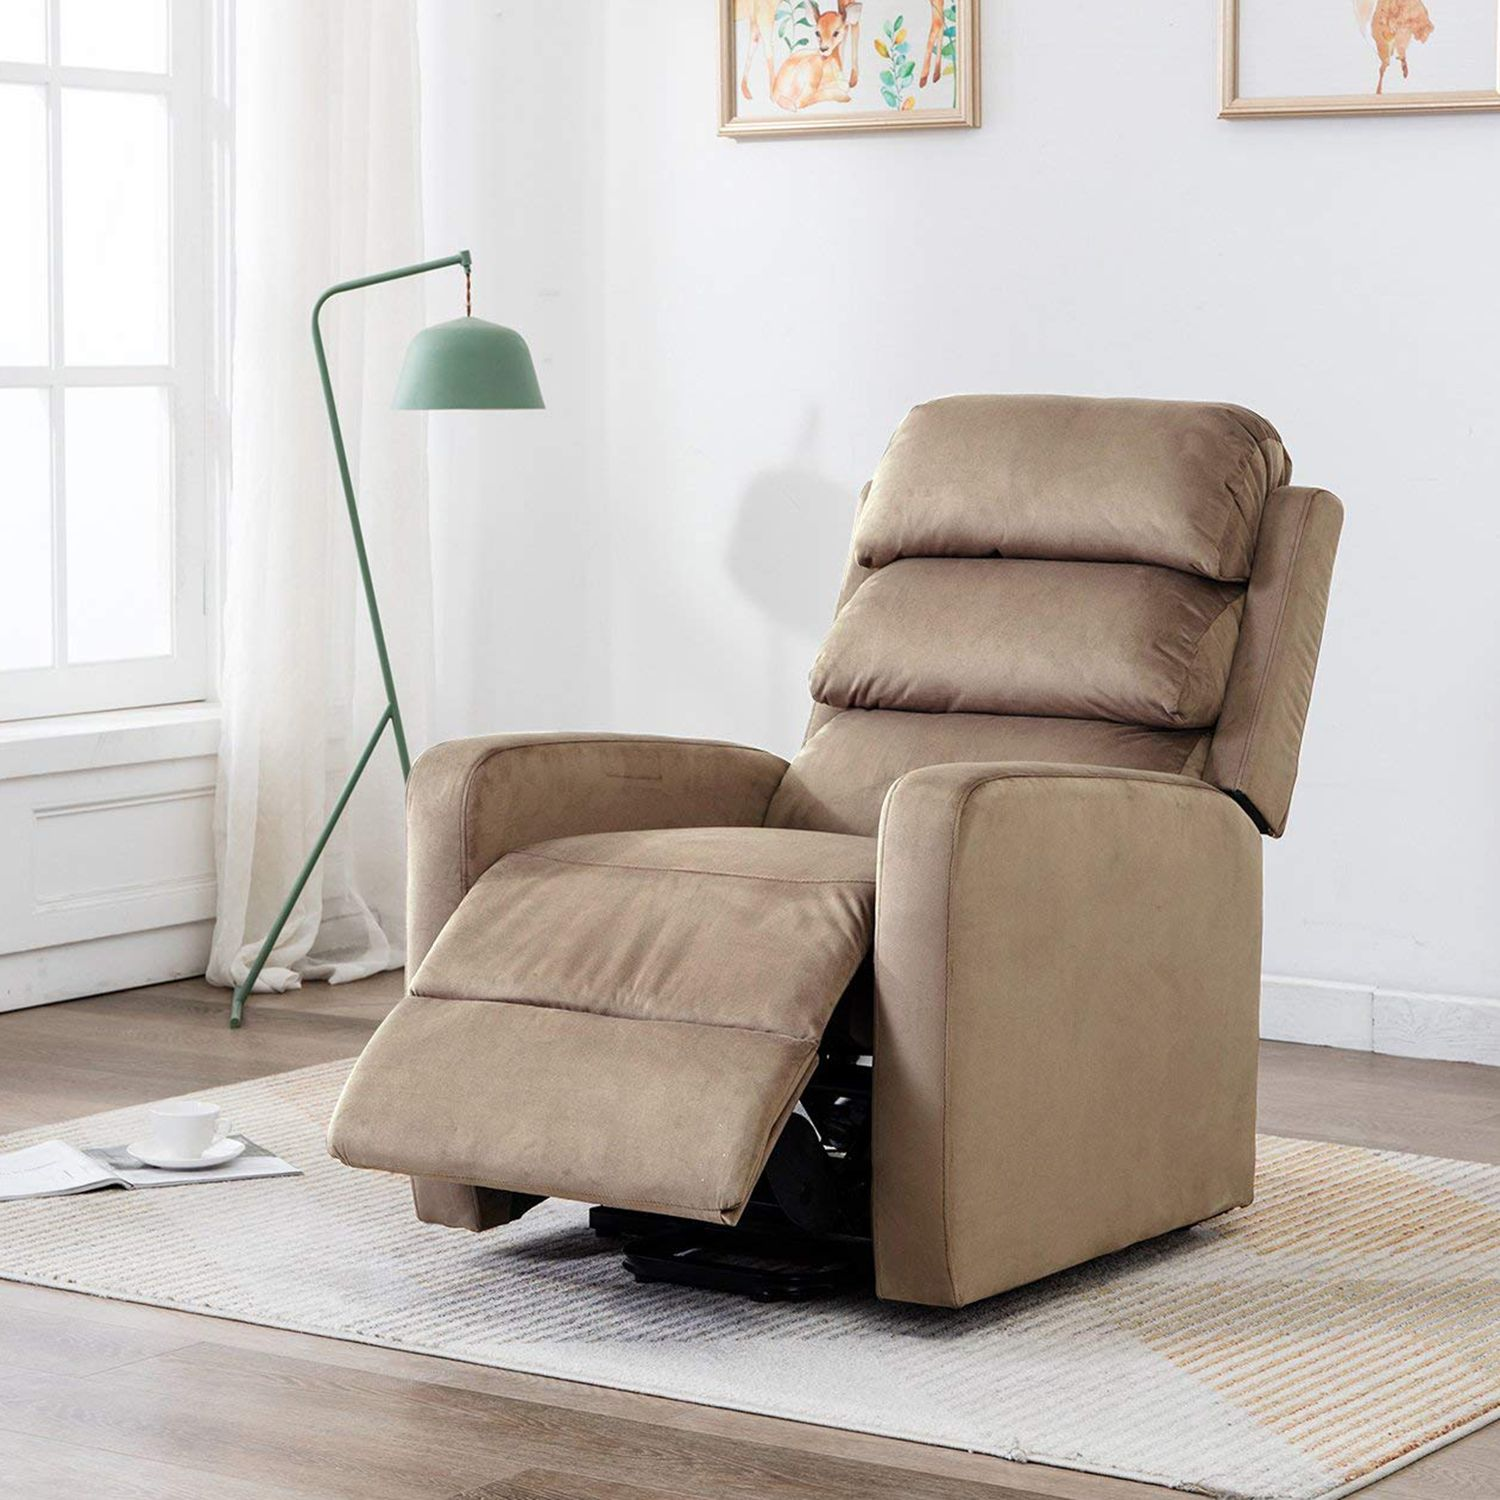 Top 10 Best Recliner Chairs in 2018 Reviews & Buyer's